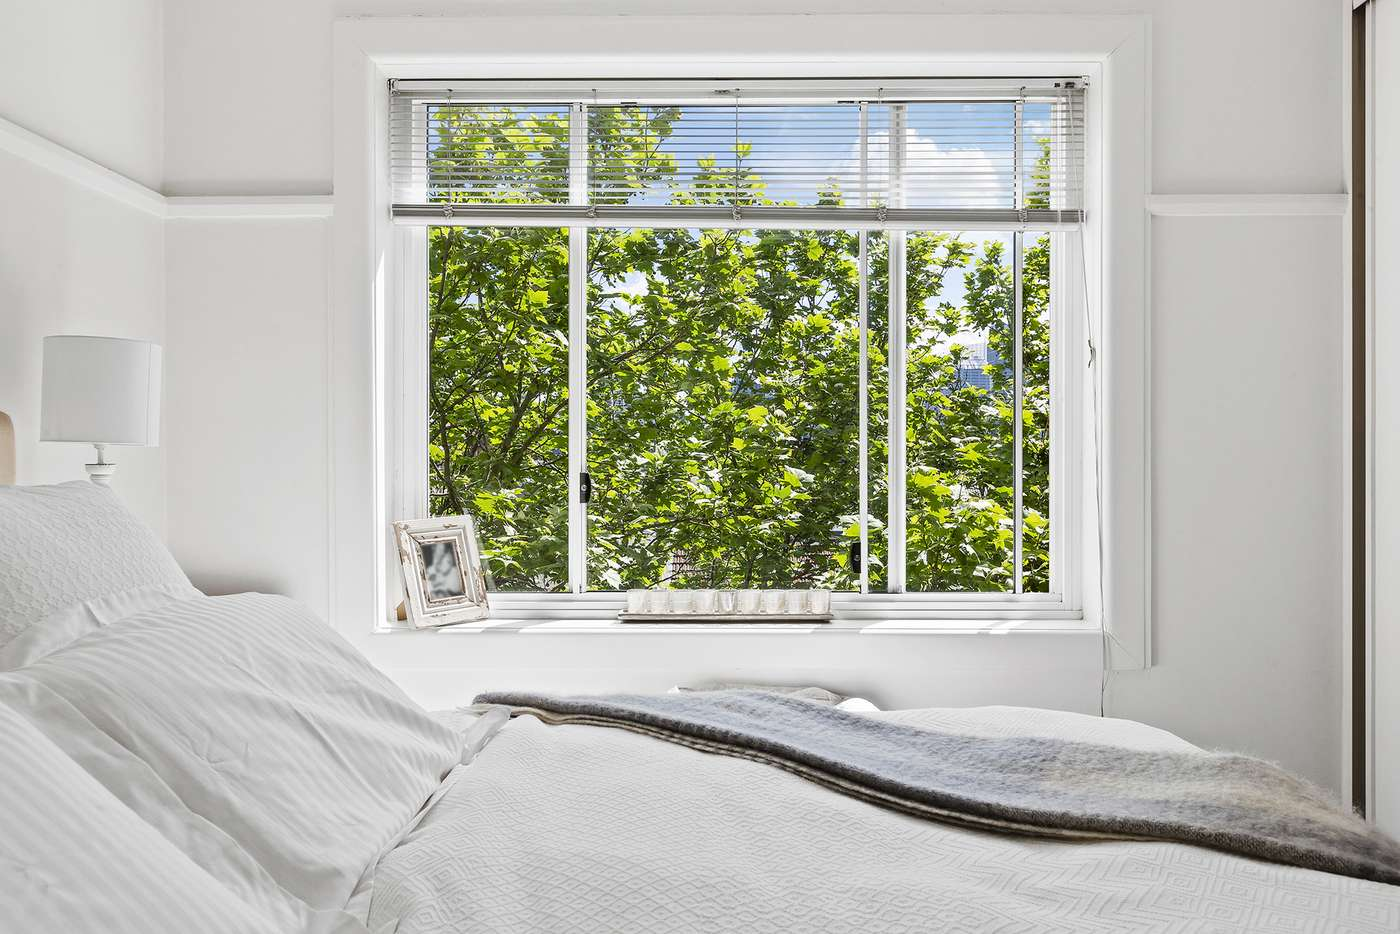 Fifth view of Homely apartment listing, 47/20 Macleay Street, Potts Point NSW 2011